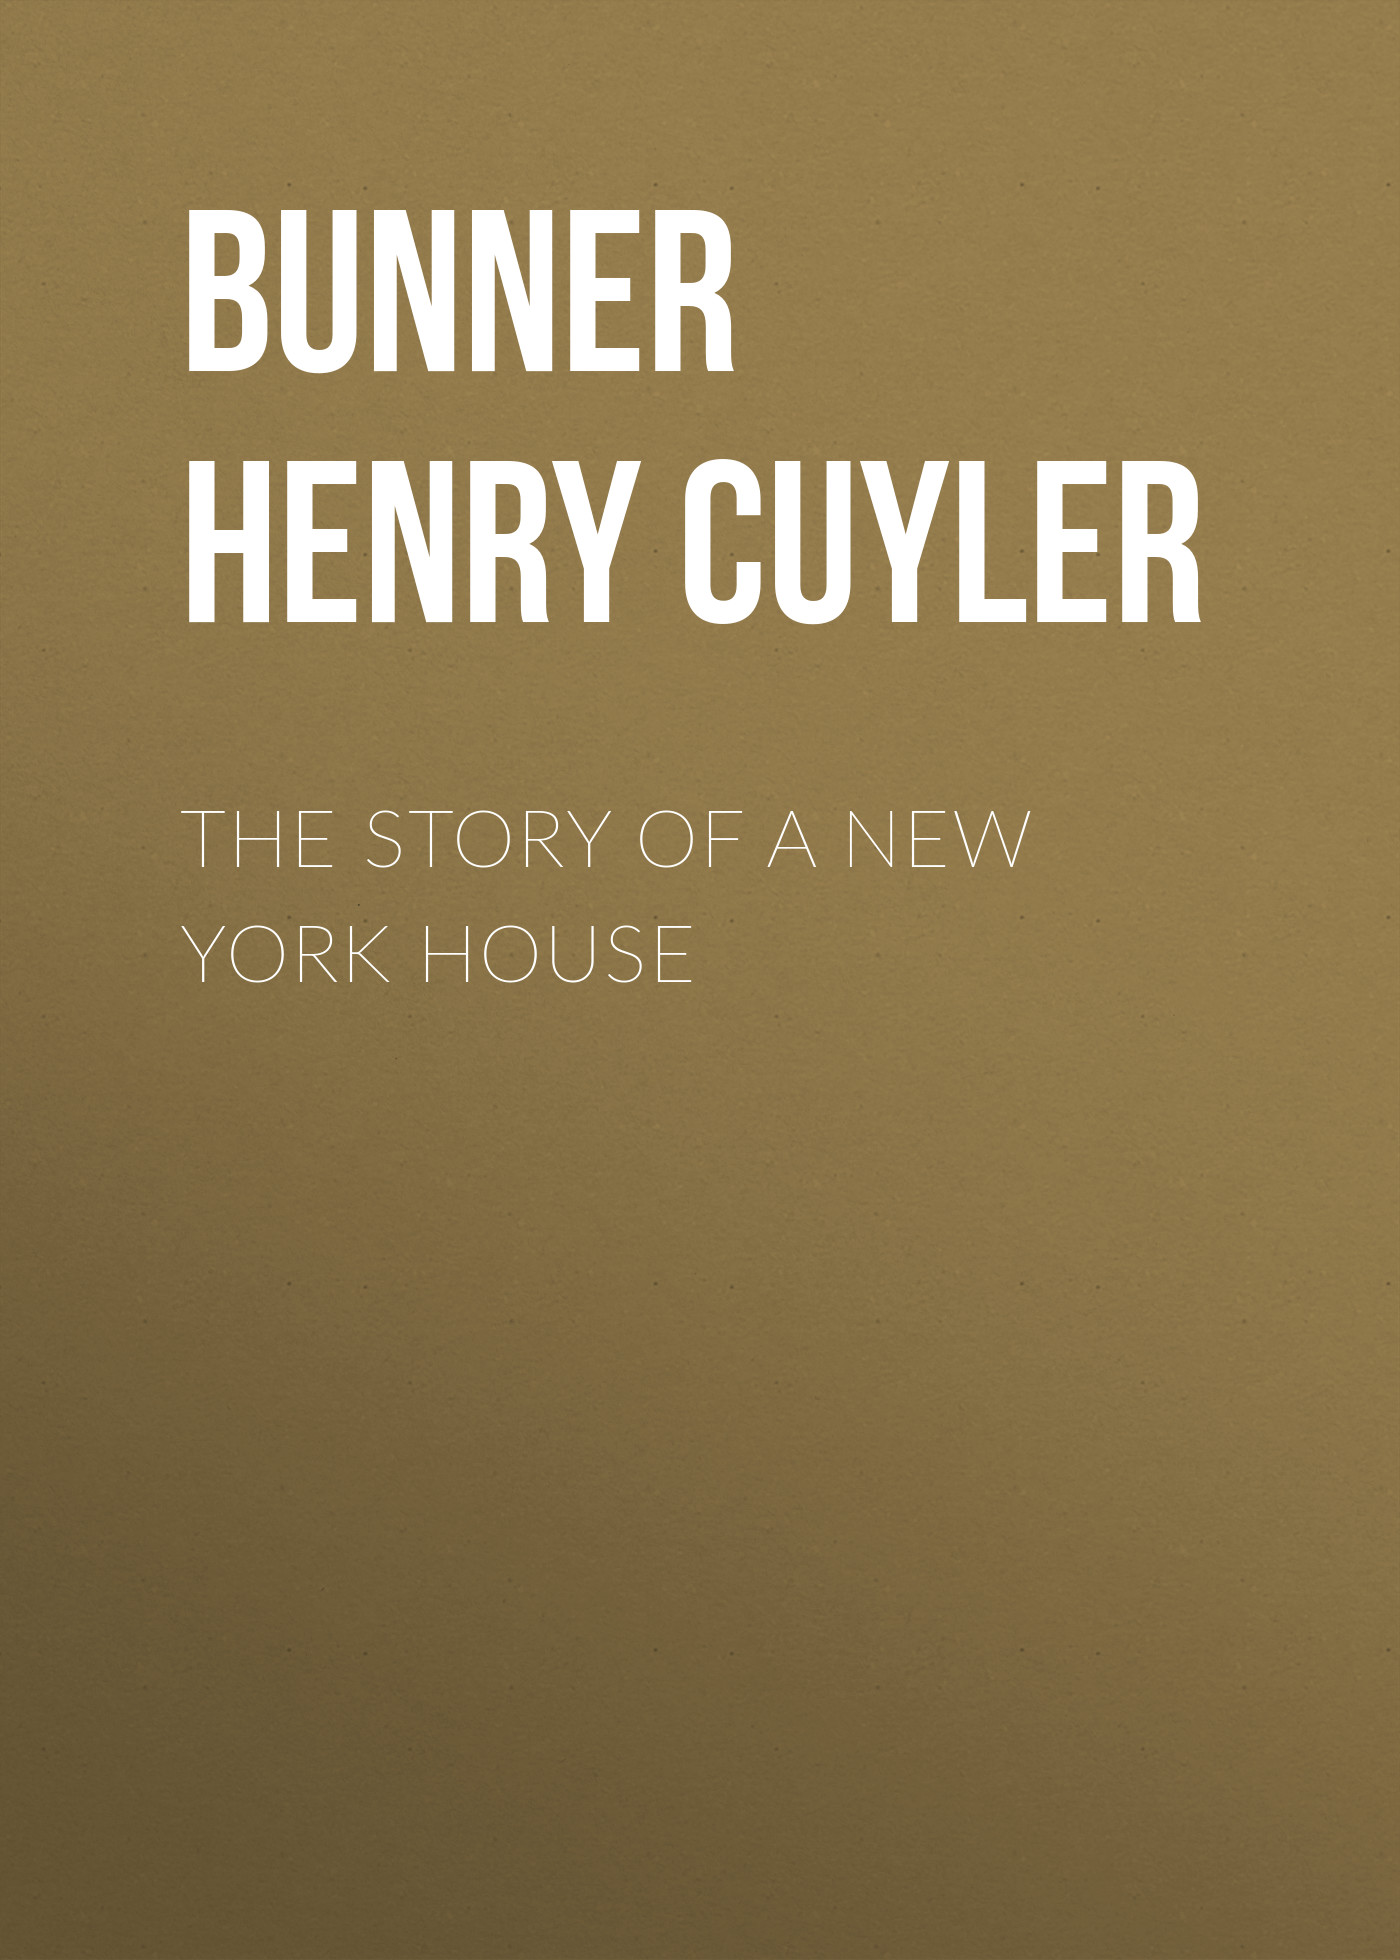 купить Bunner Henry Cuyler The Story of a New York House в интернет-магазине